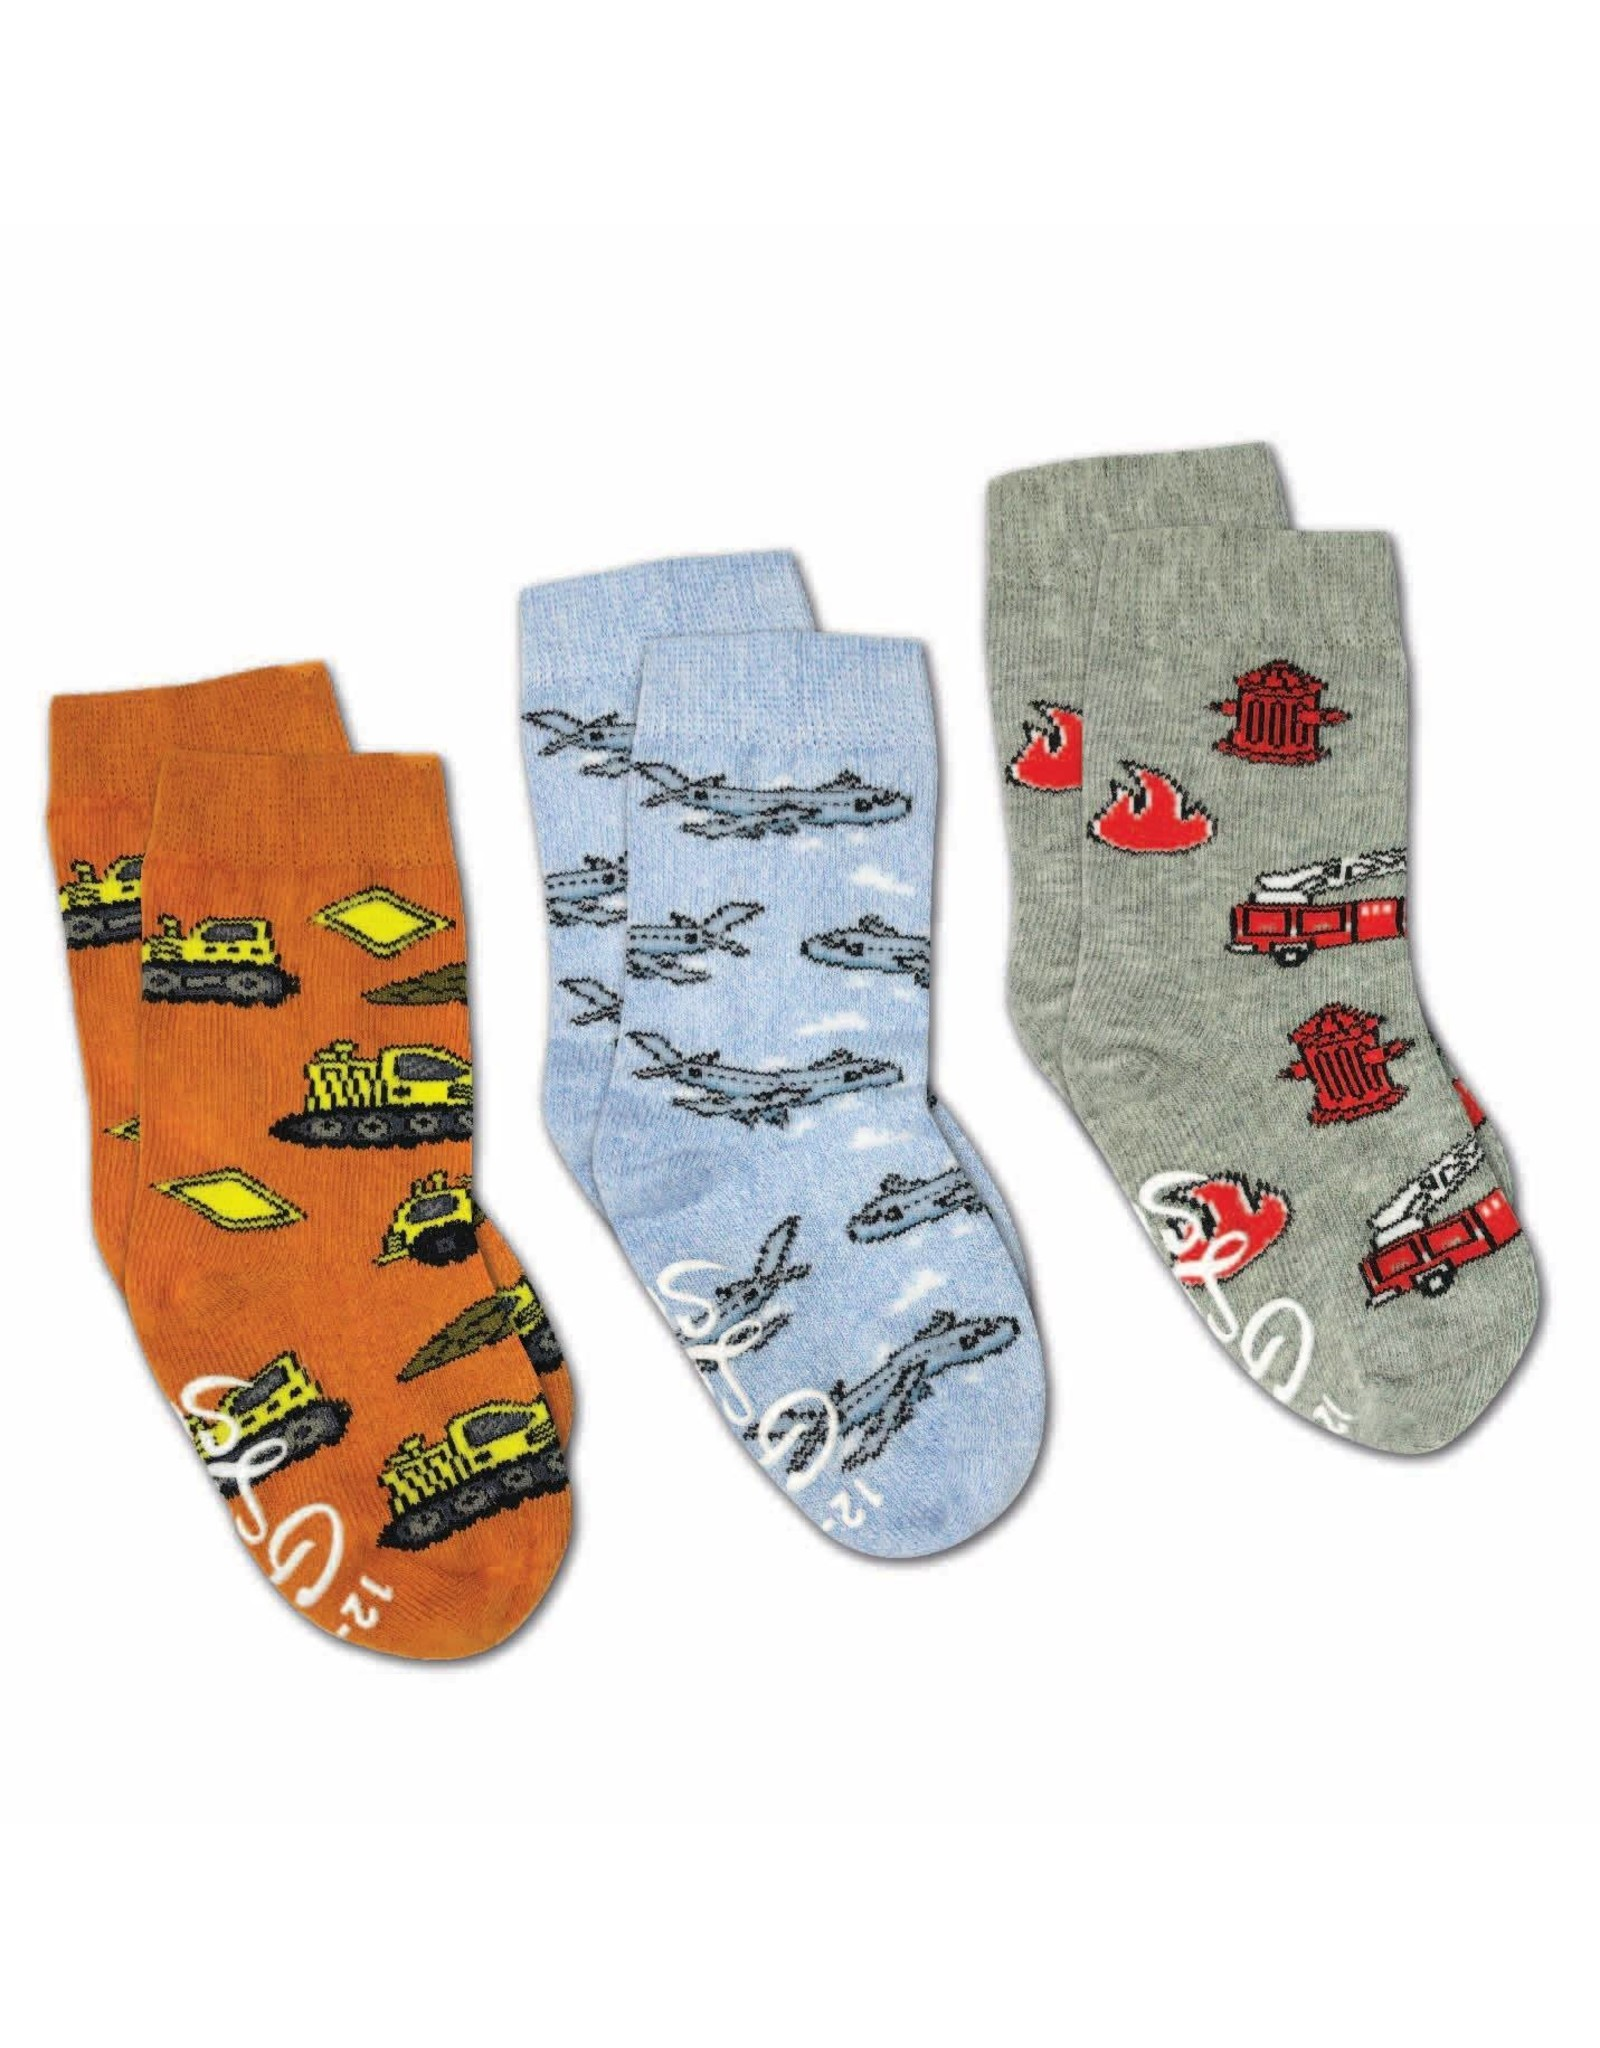 Good Luck Sock Airplanes/Construction/Firefighter Socks, 1-2